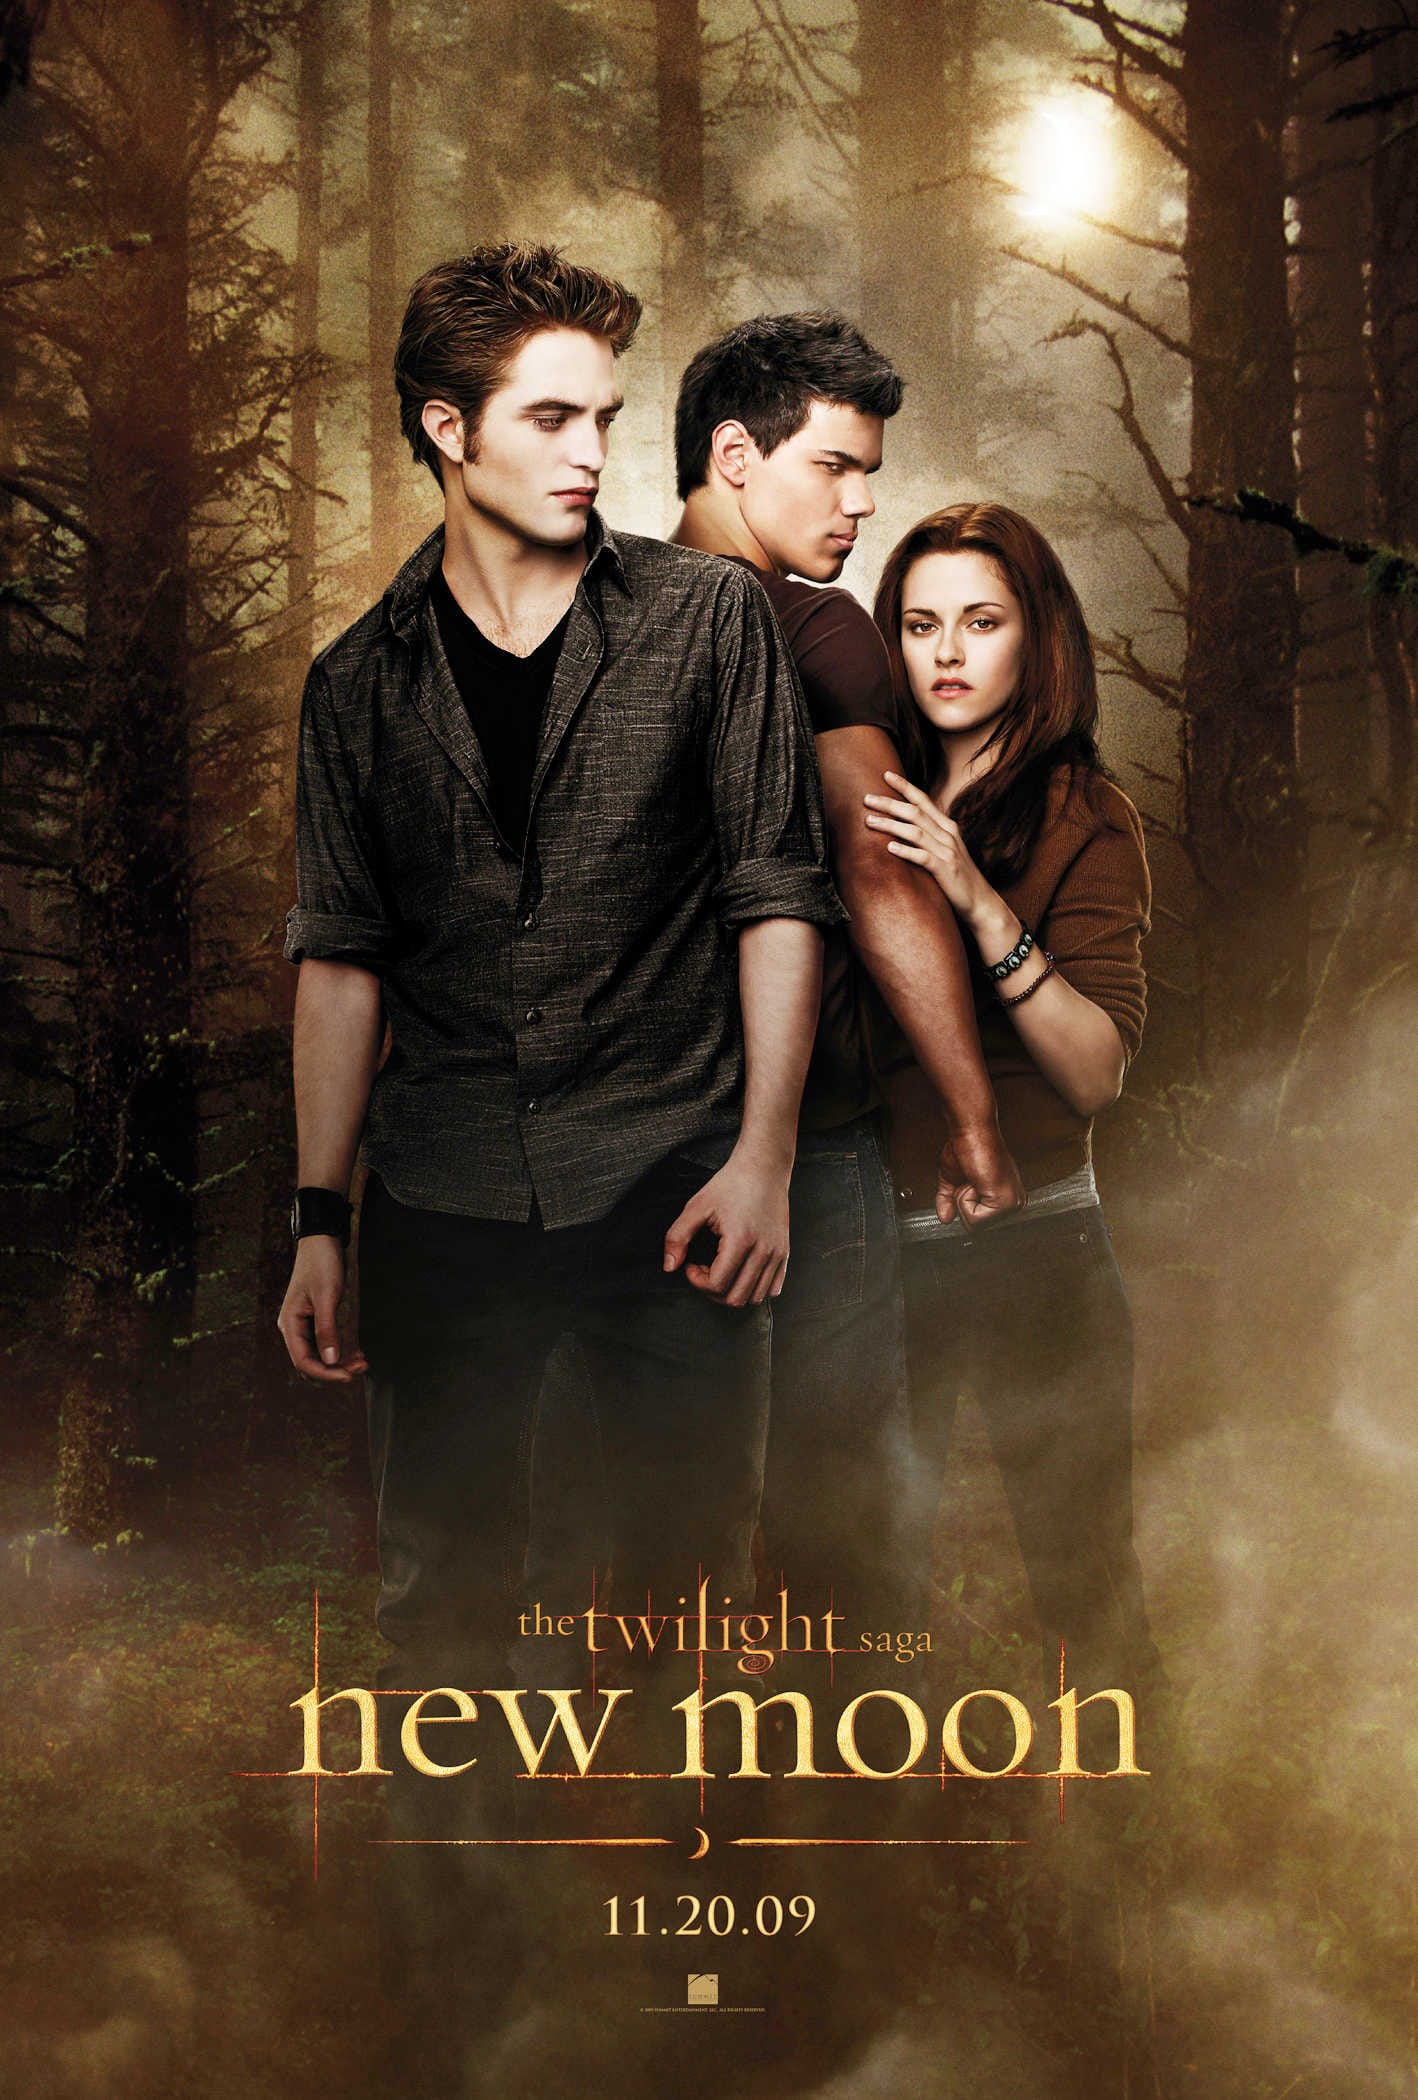 TWILIGHT NEW MOON FULL BOOK PDF DOWNLOAD